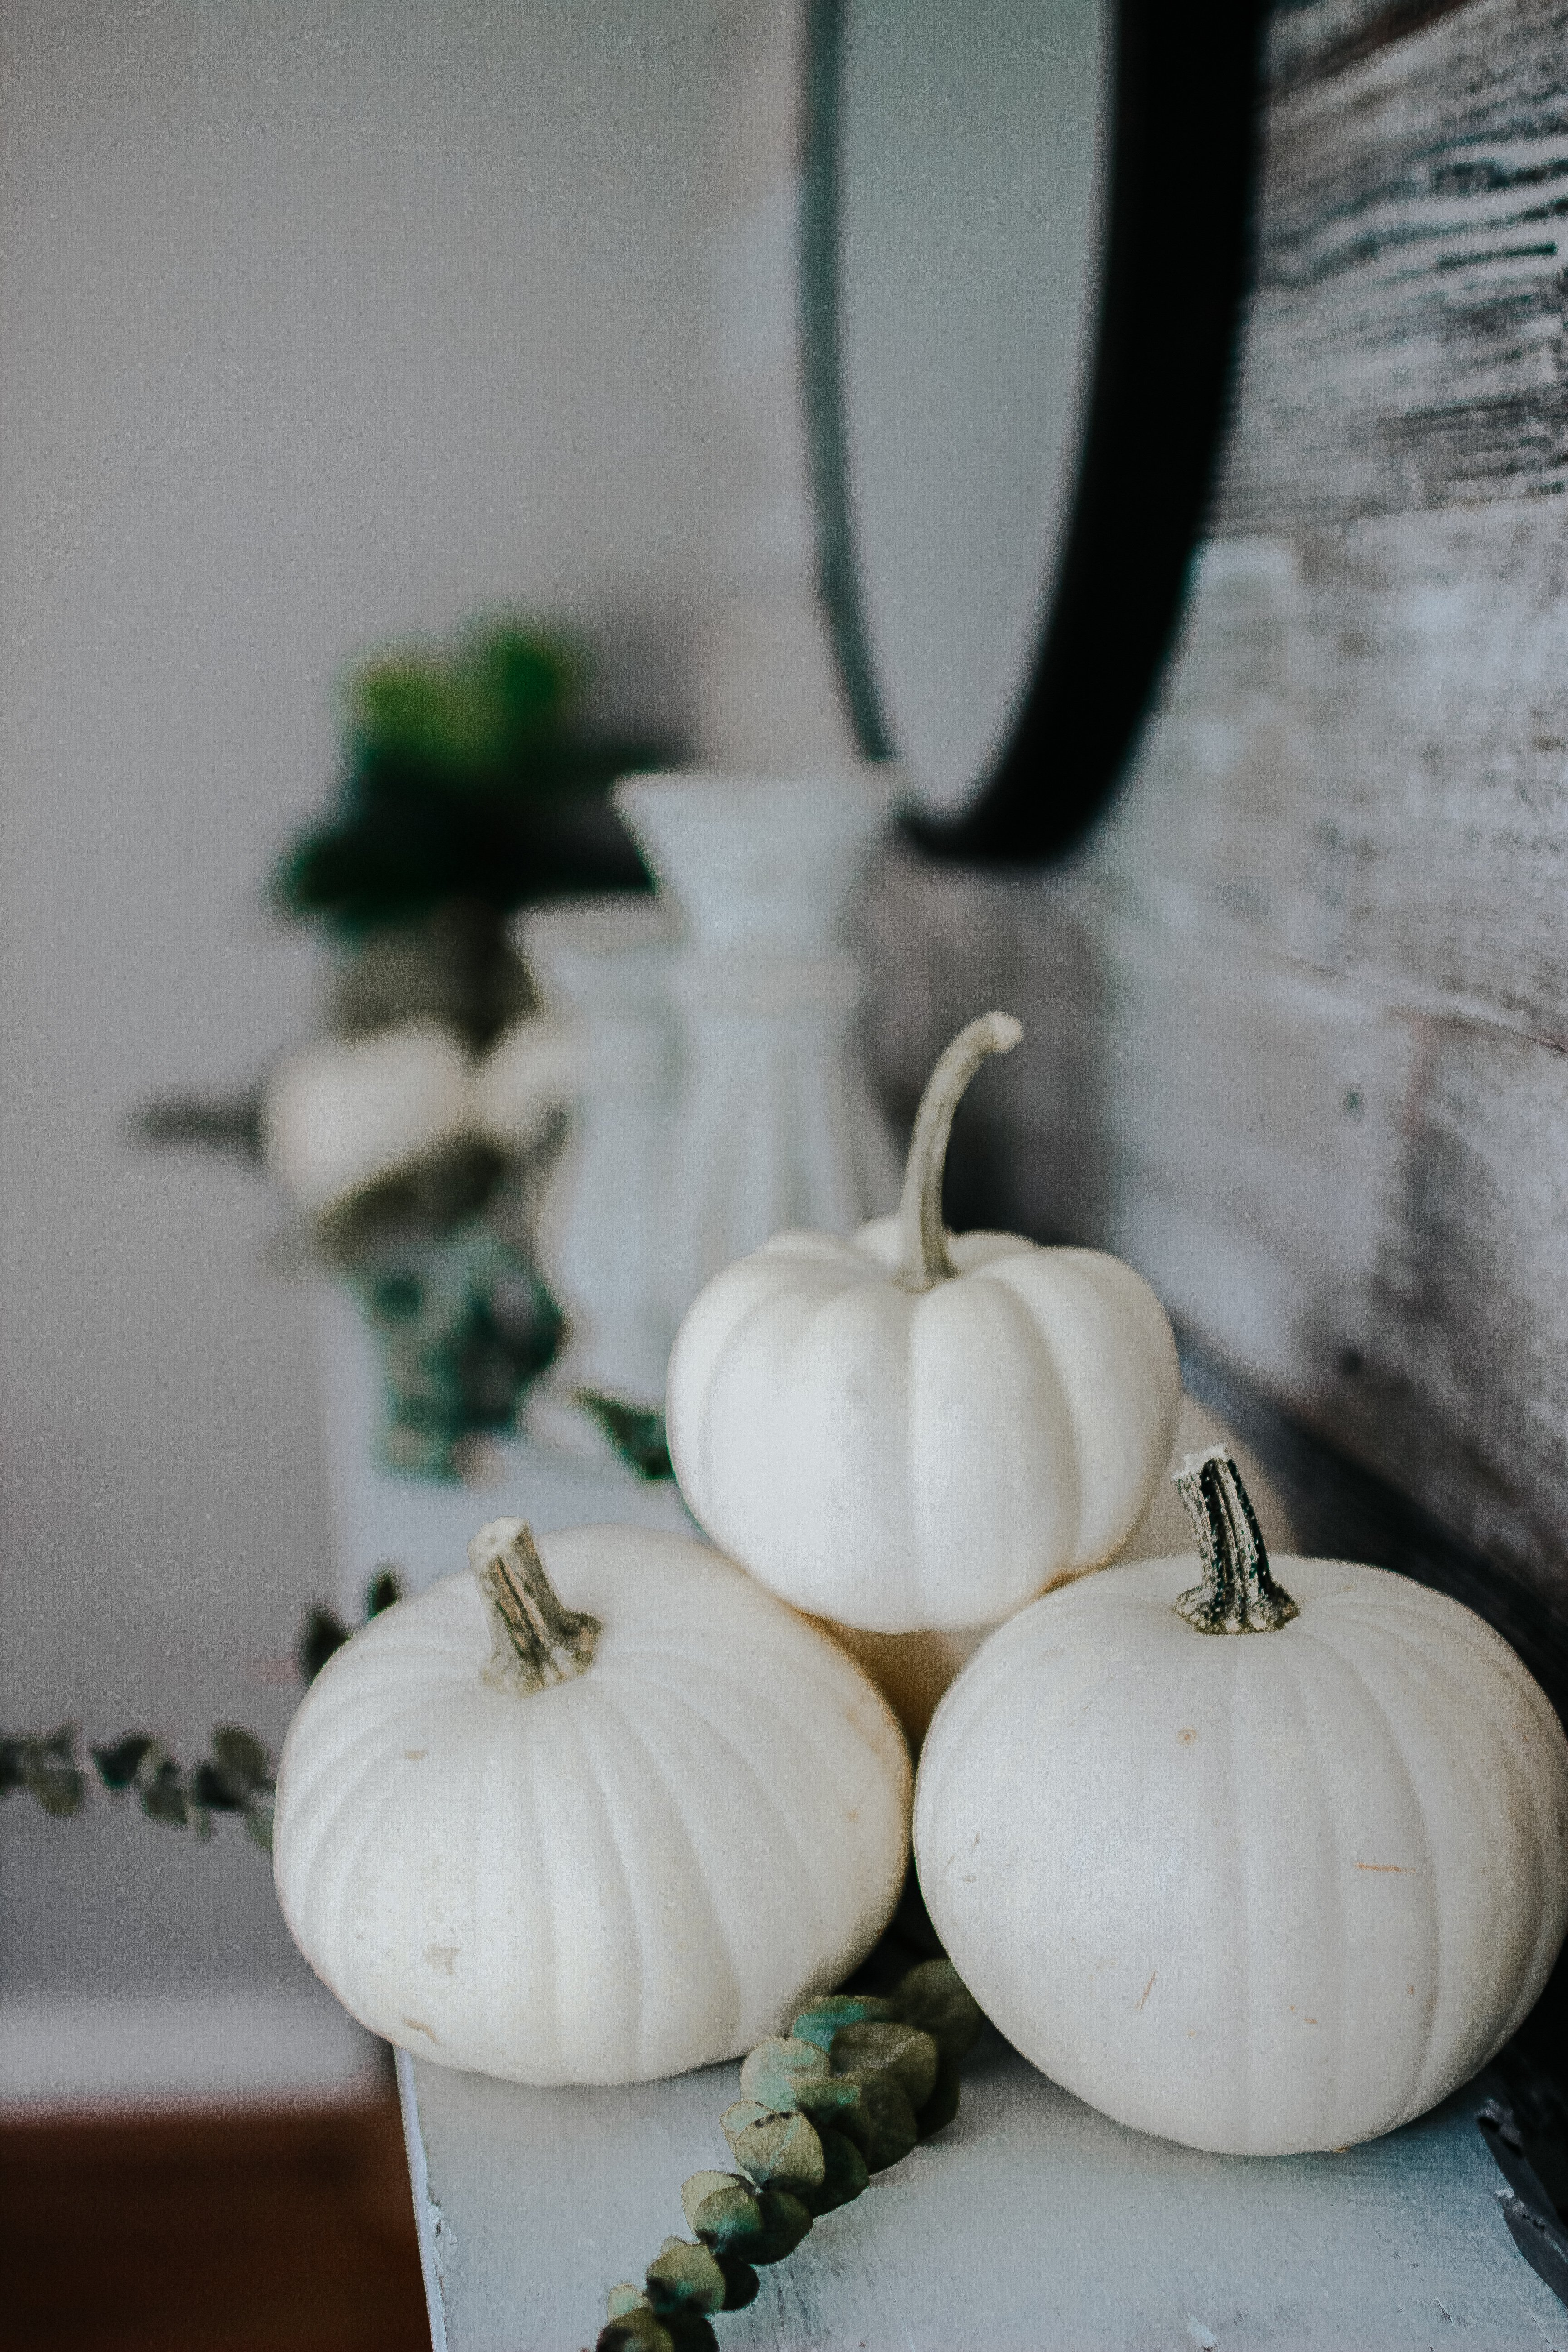 Neutral Fall Mantel. Modern Farmhouse Fall Mantel Super Easy Decorating For Fall That Doesn't Have to Cost A lot. Dried Eucalyuptus and Real Pumpkins and A Bit Of White Paint #falldecor #cheapfalldecorations #fallmantel